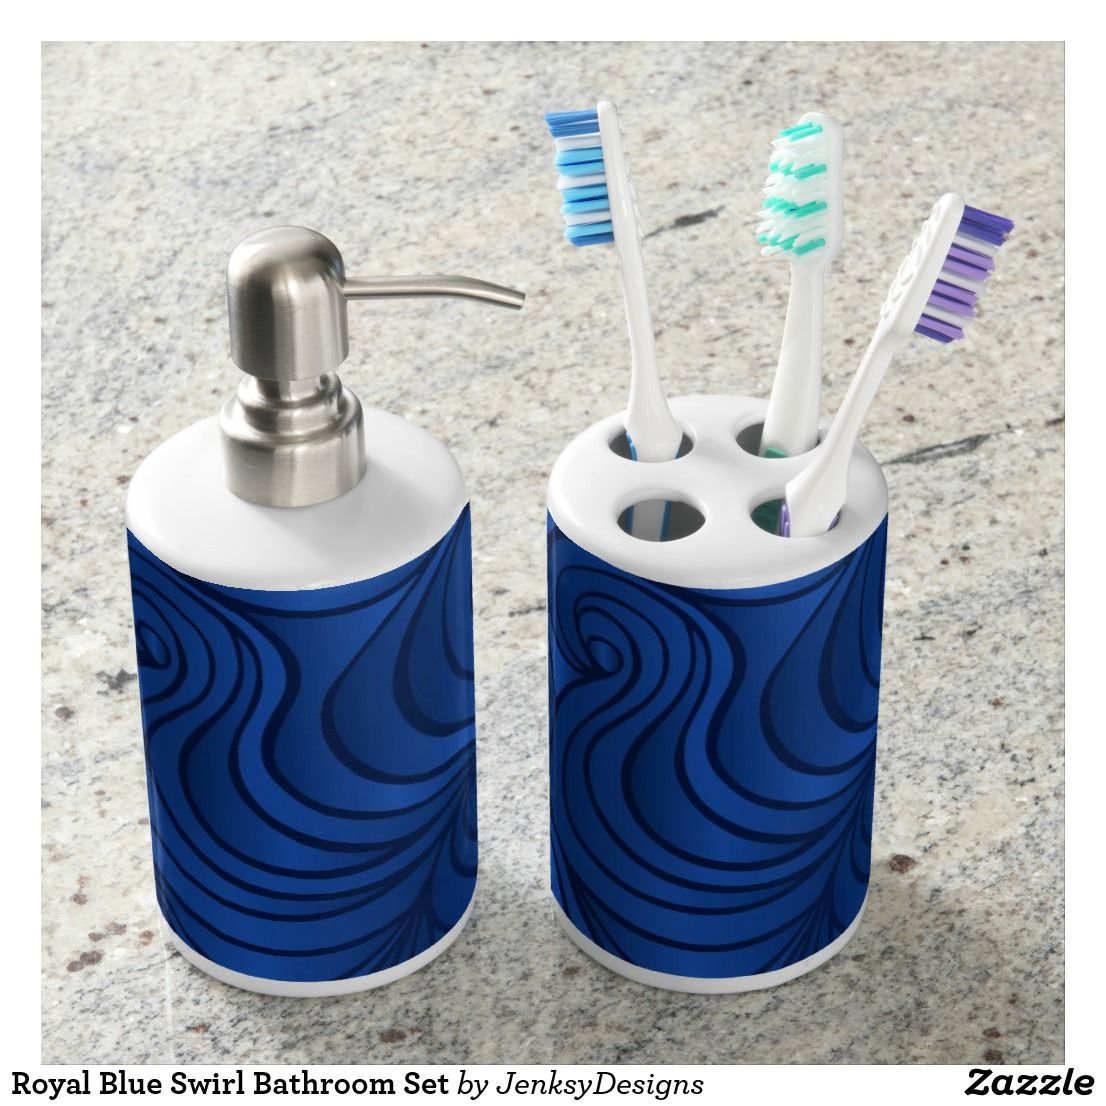 Royal Blue Swirl Bathroom Set